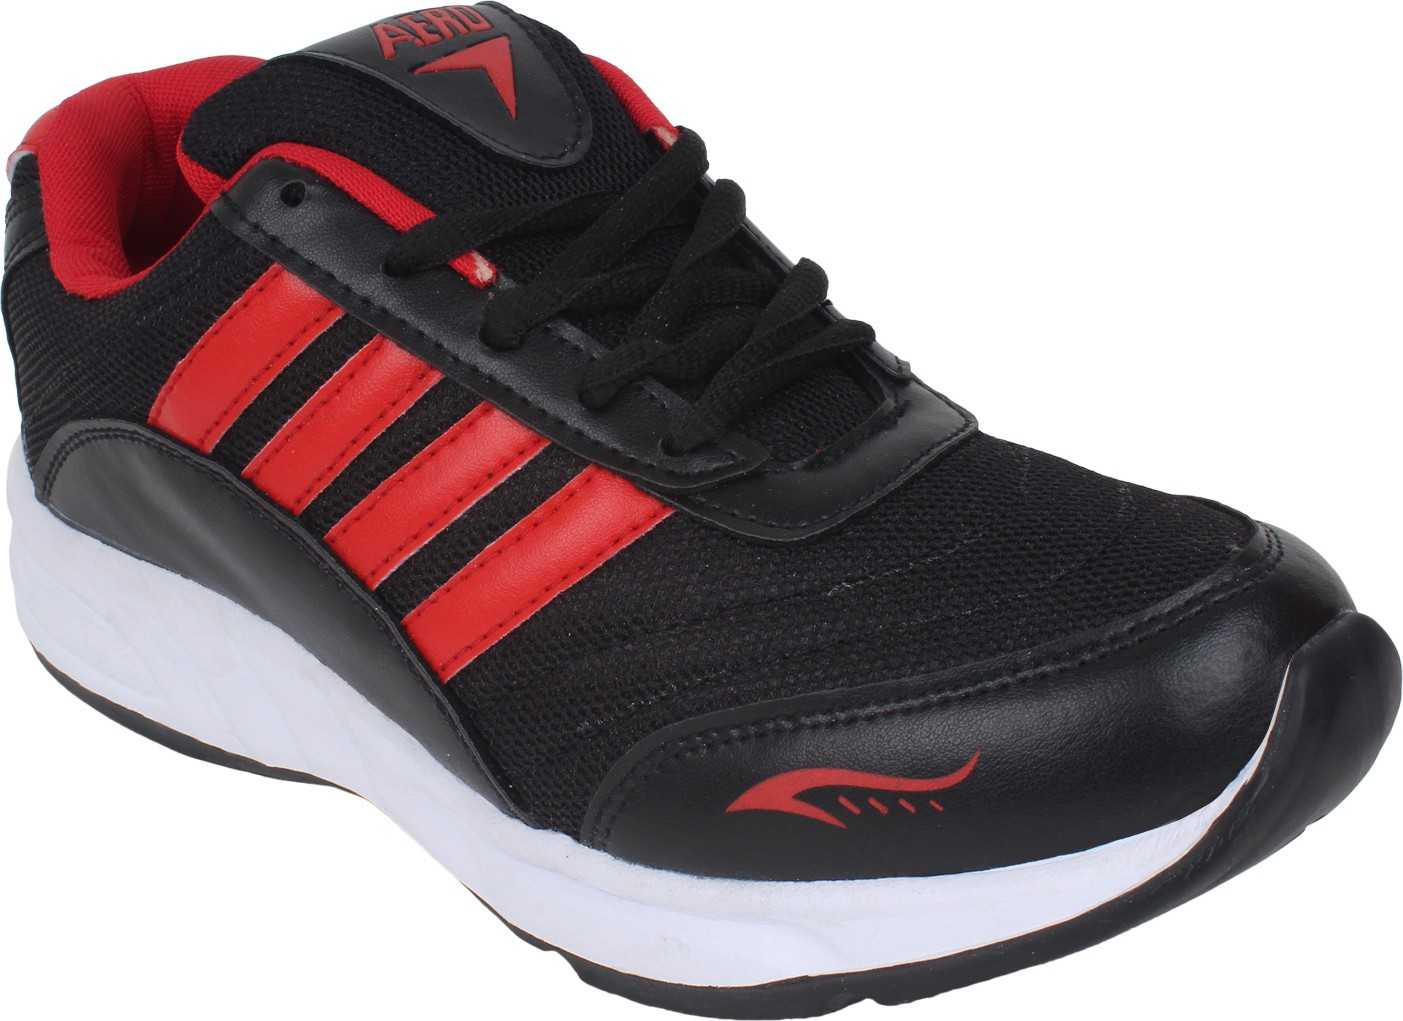 Flipkart - Men's Footwear Below Rs.444